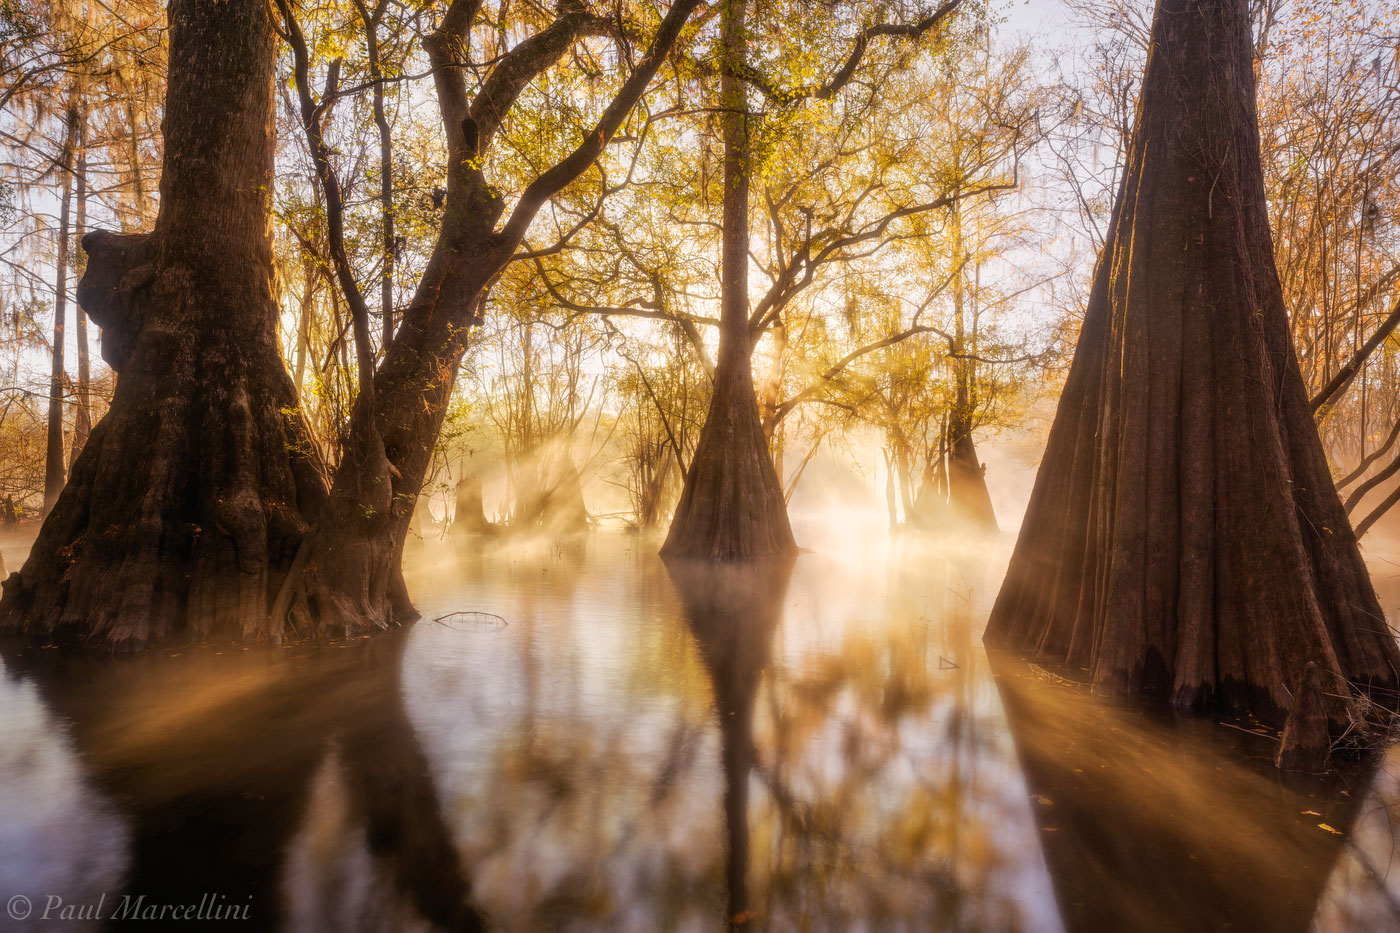 sunrise, fog, suwannee valley, florida, backwaters, nature, photography, photo